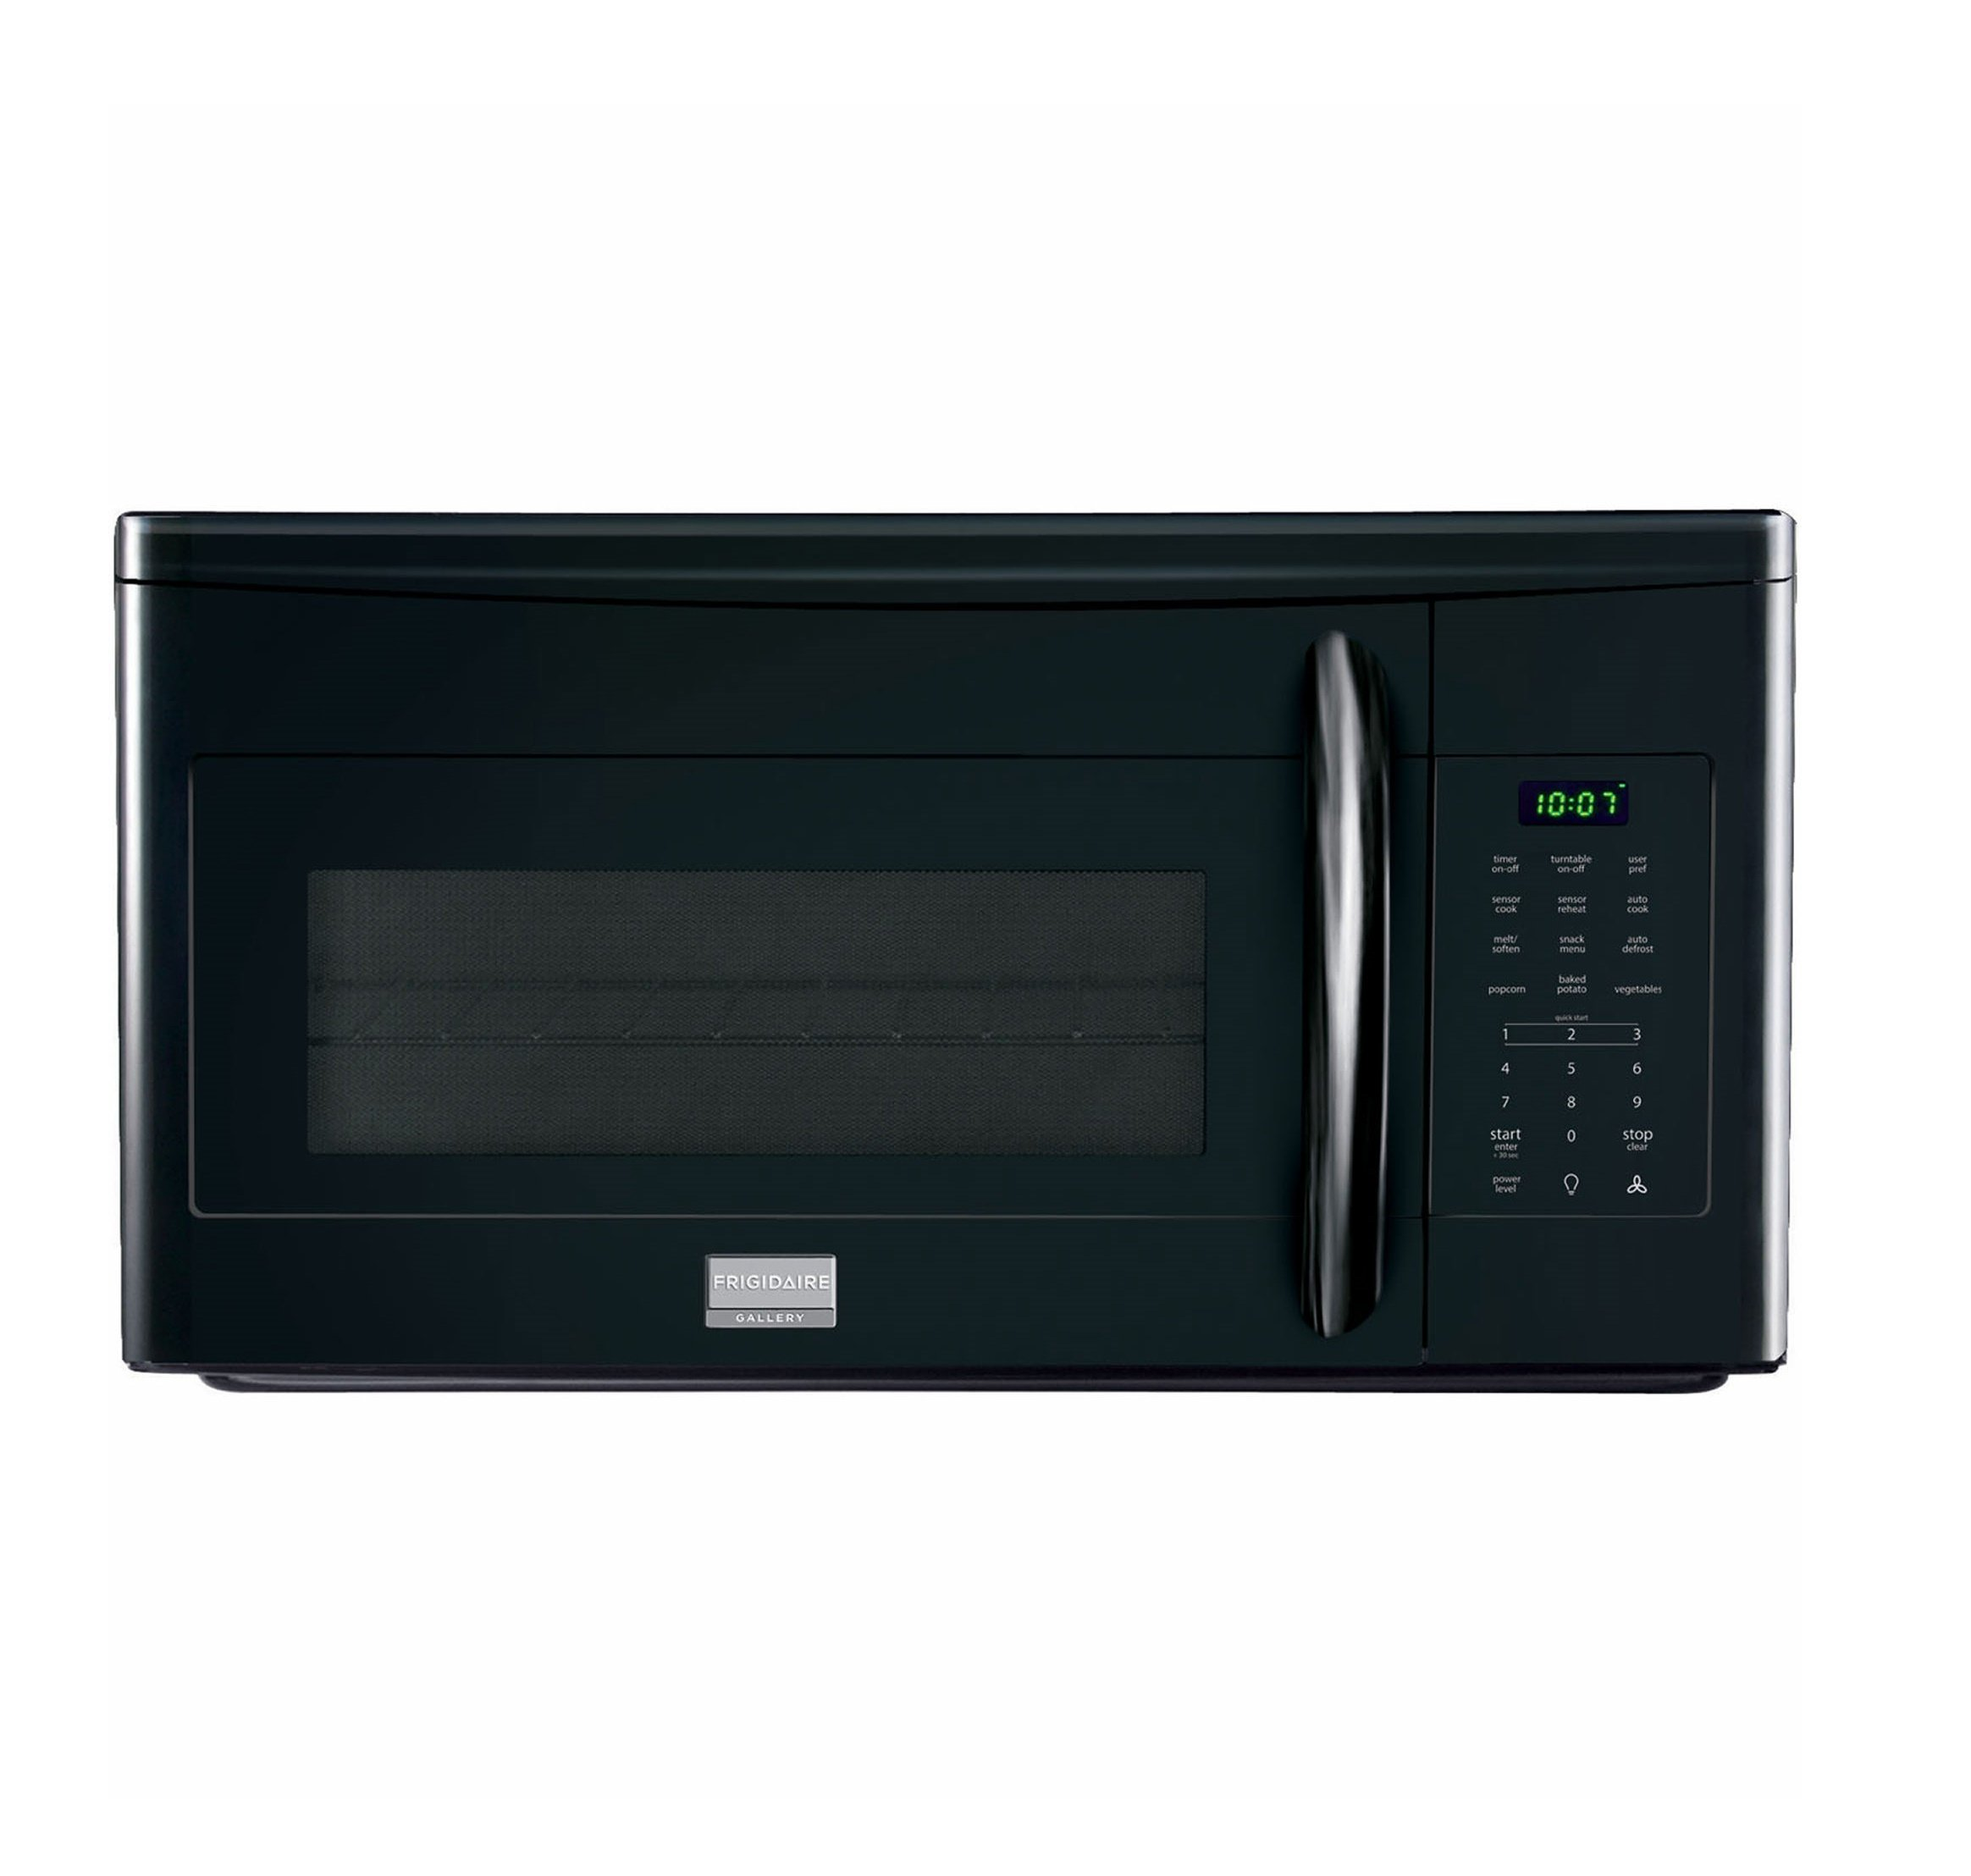 Frigidaire FGMV175QB 1.7 cu. ft. Over-the-Range Microwave Oven